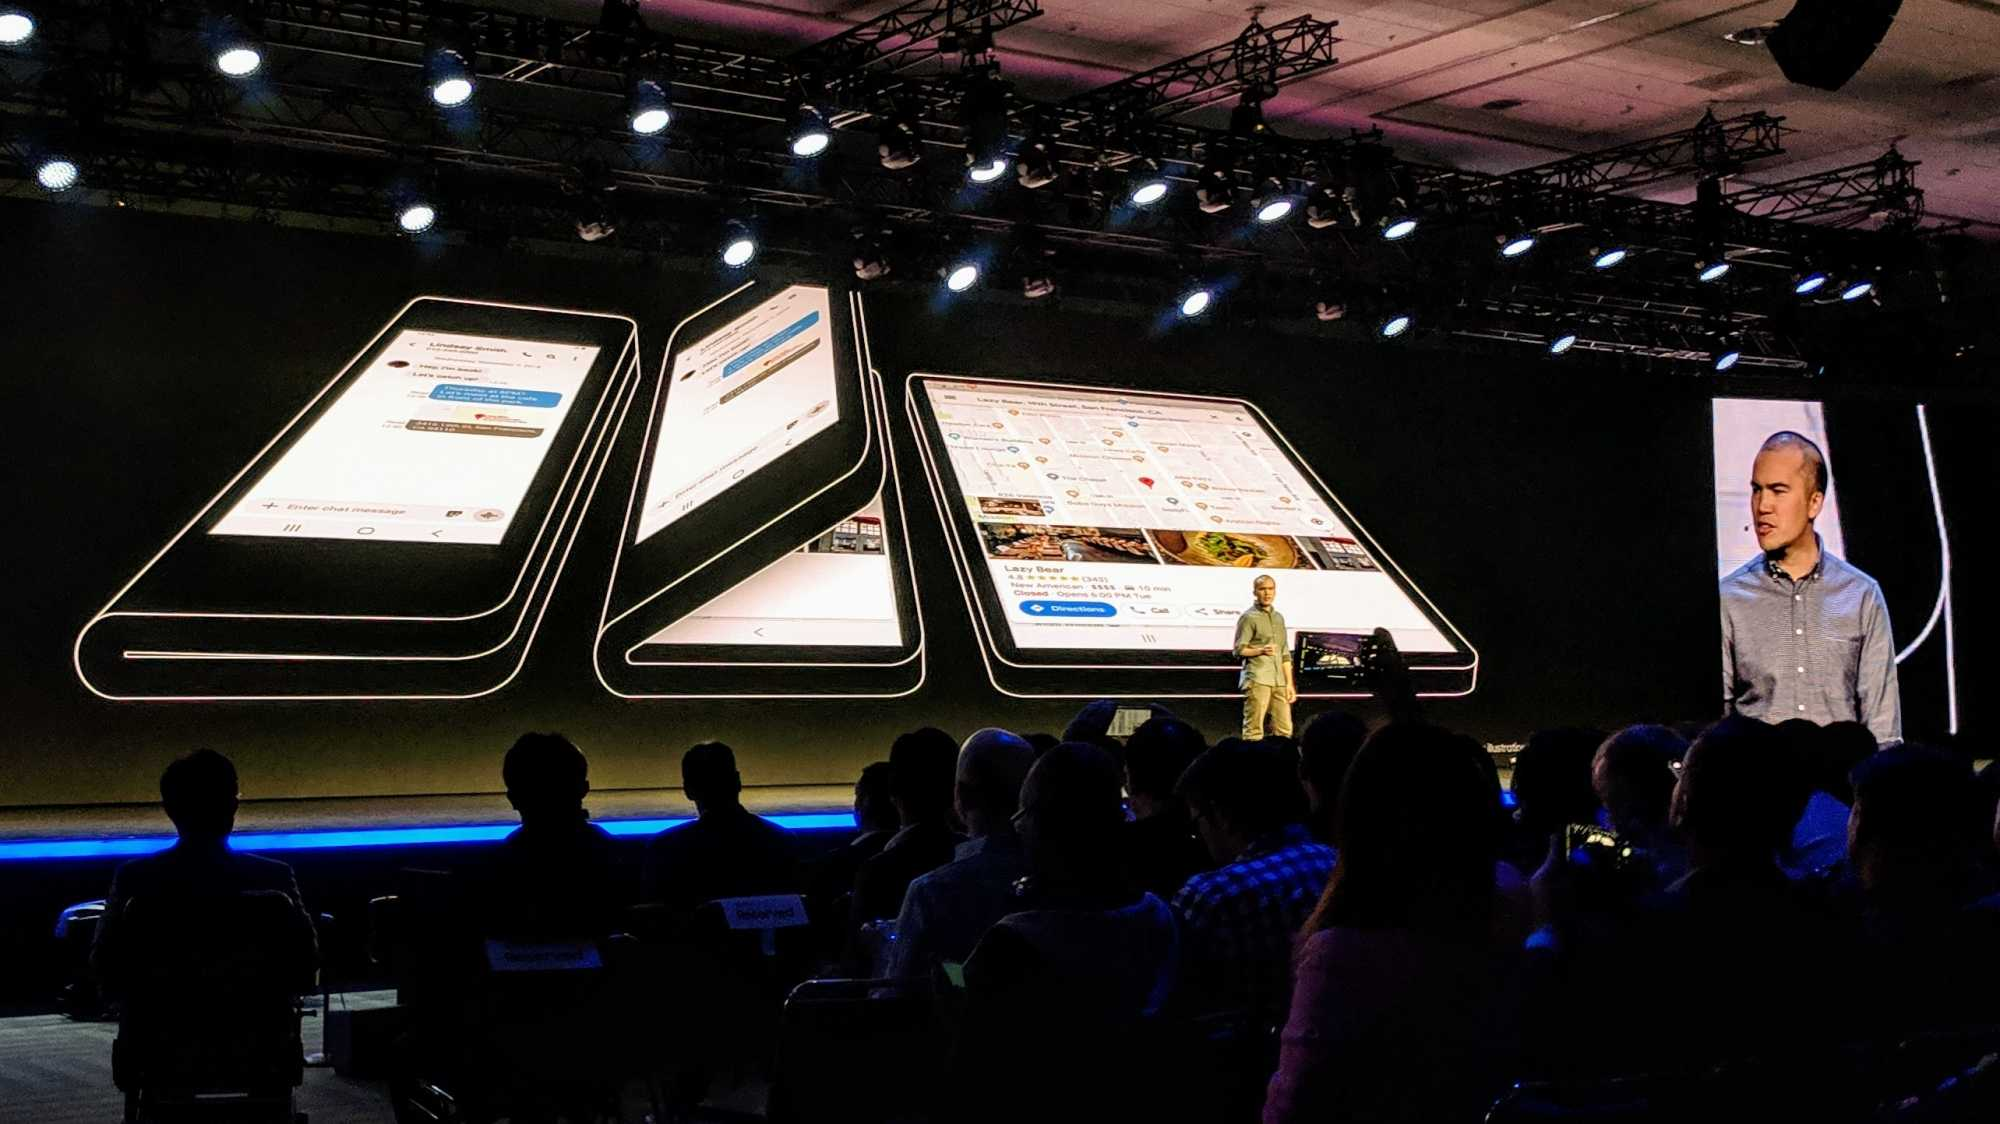 Glen Murphy, chief developer of the Android user interface, announced in San Francisco the support of the new